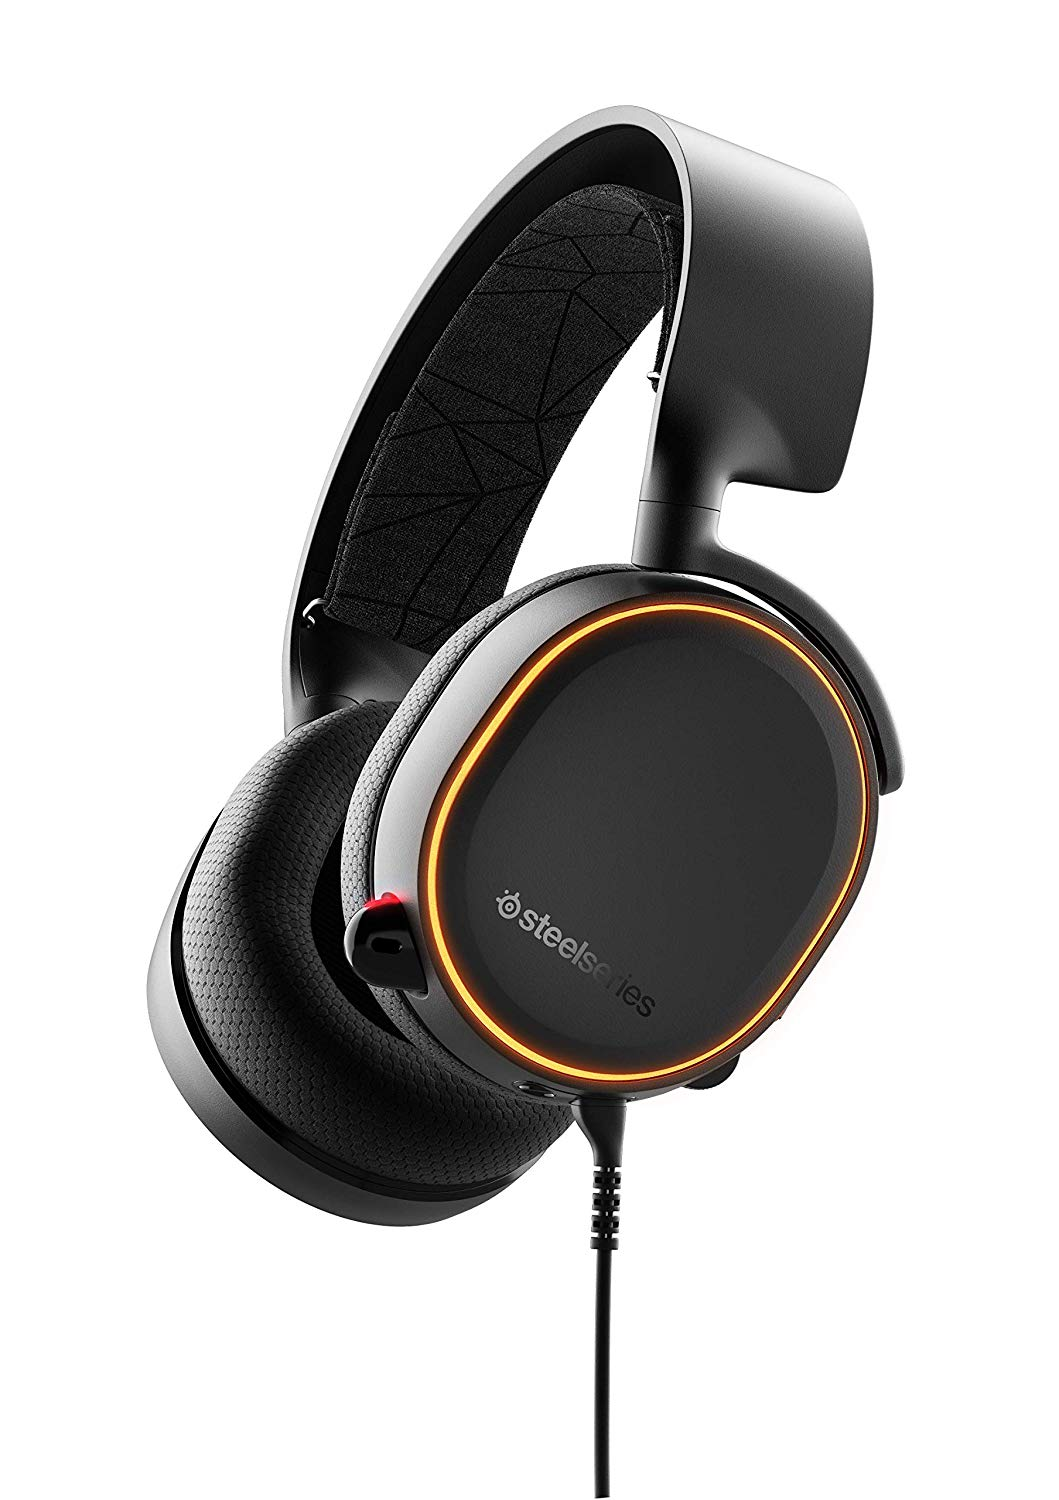 Image of the brand new Arctis 5 by SteelSeries